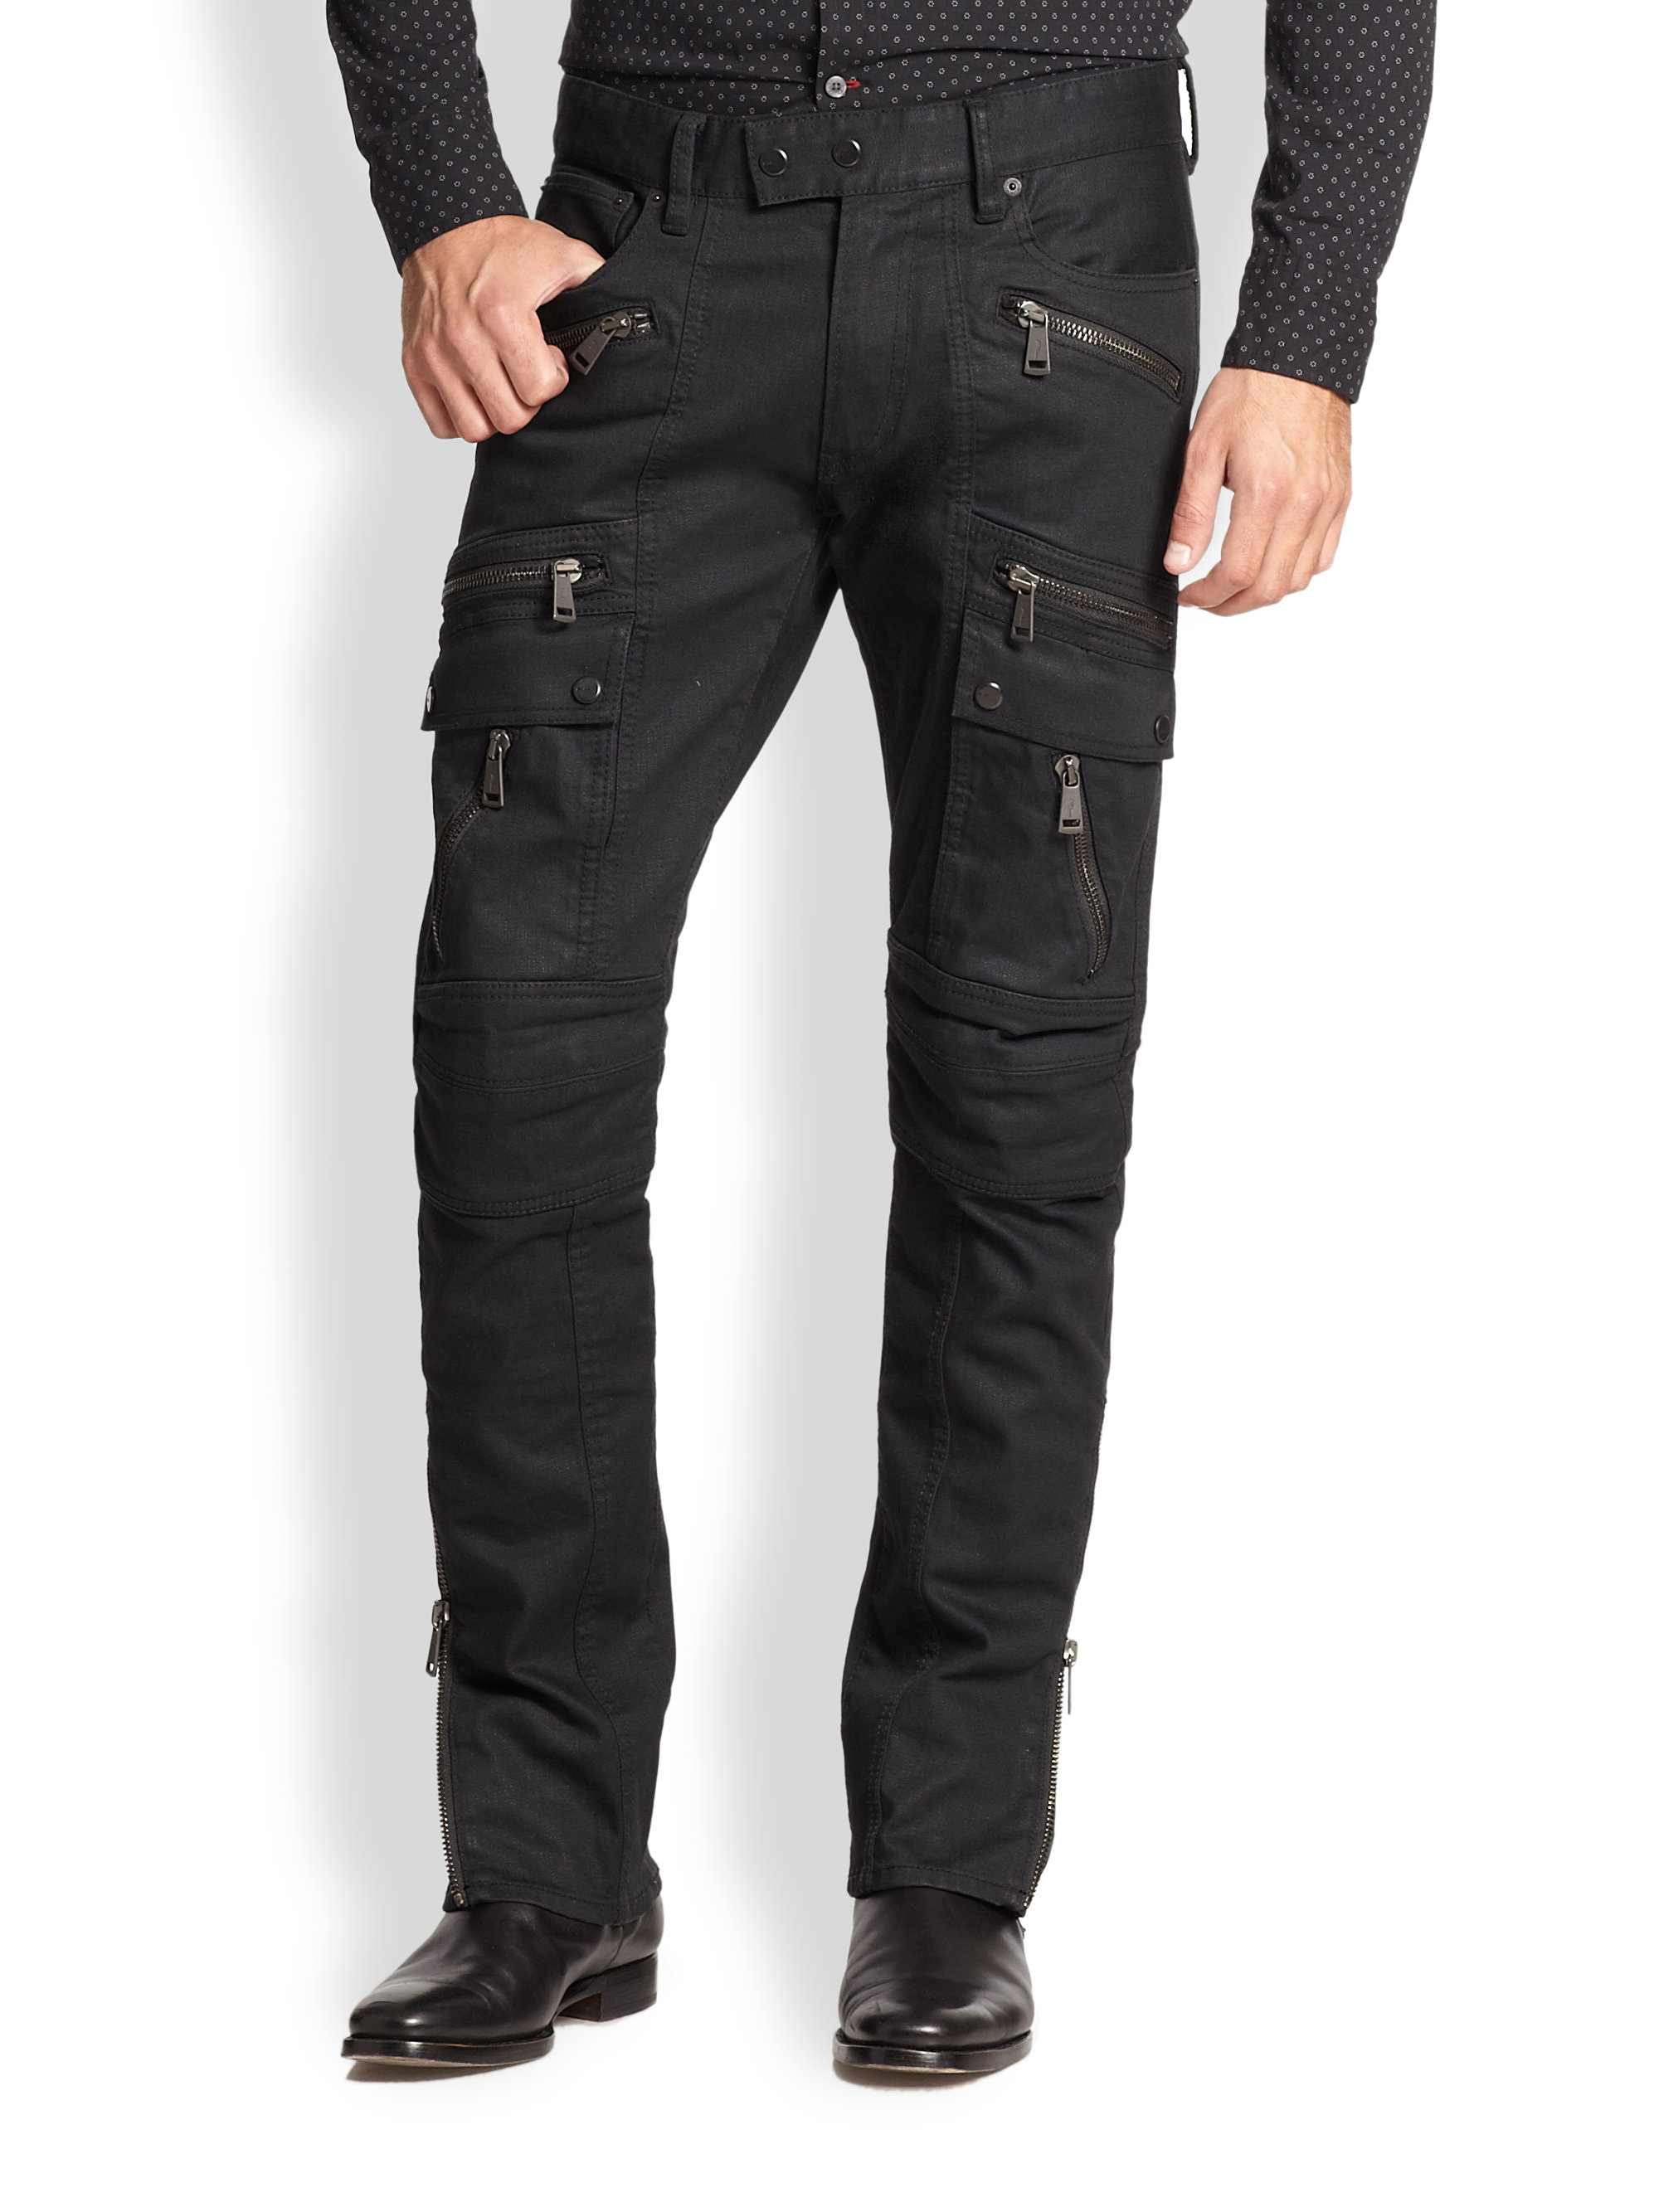 lyst ralph lauren black label defender moto jeans in black for men. Black Bedroom Furniture Sets. Home Design Ideas